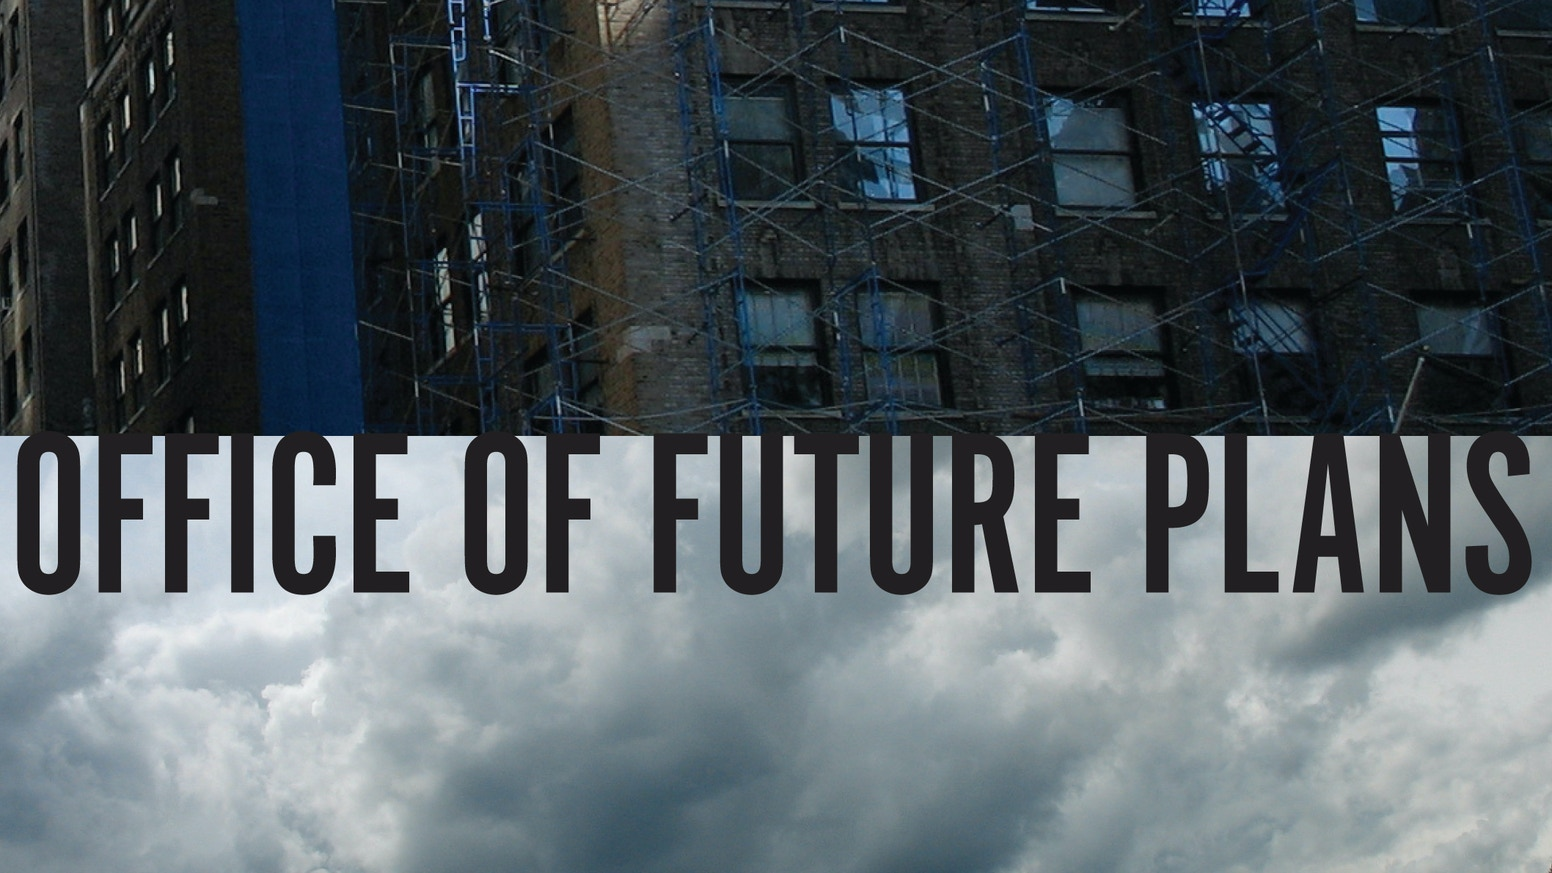 office of future plans pre order the debut 7 single by gordon